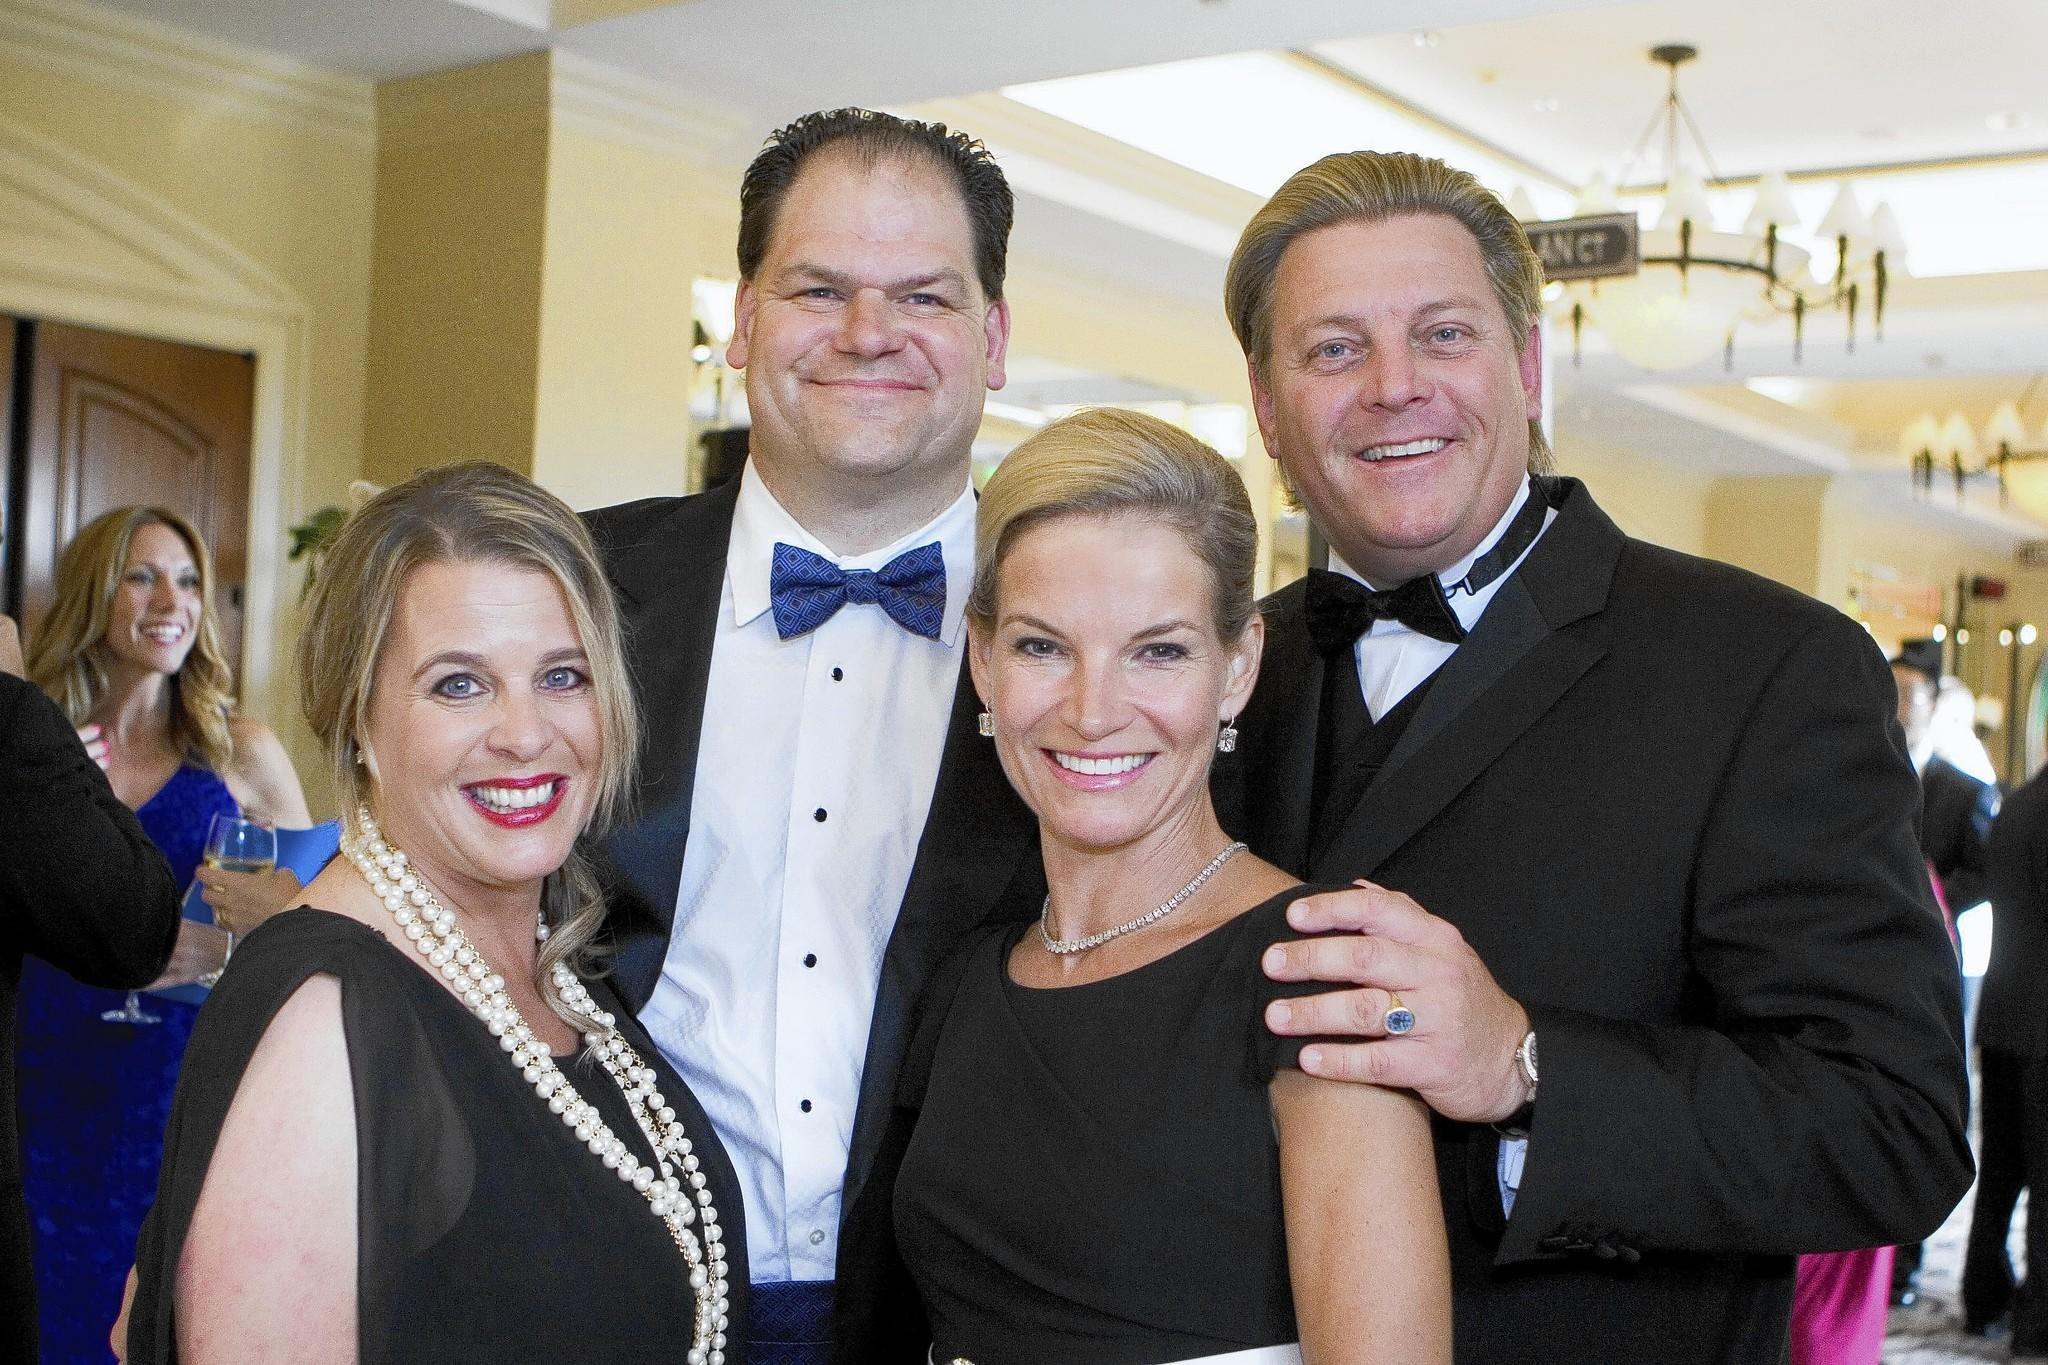 Honorees at the 2014 JDRF Dream Gala were Lara and Tom Giddings and Janet and Carl Nolet, Jr.